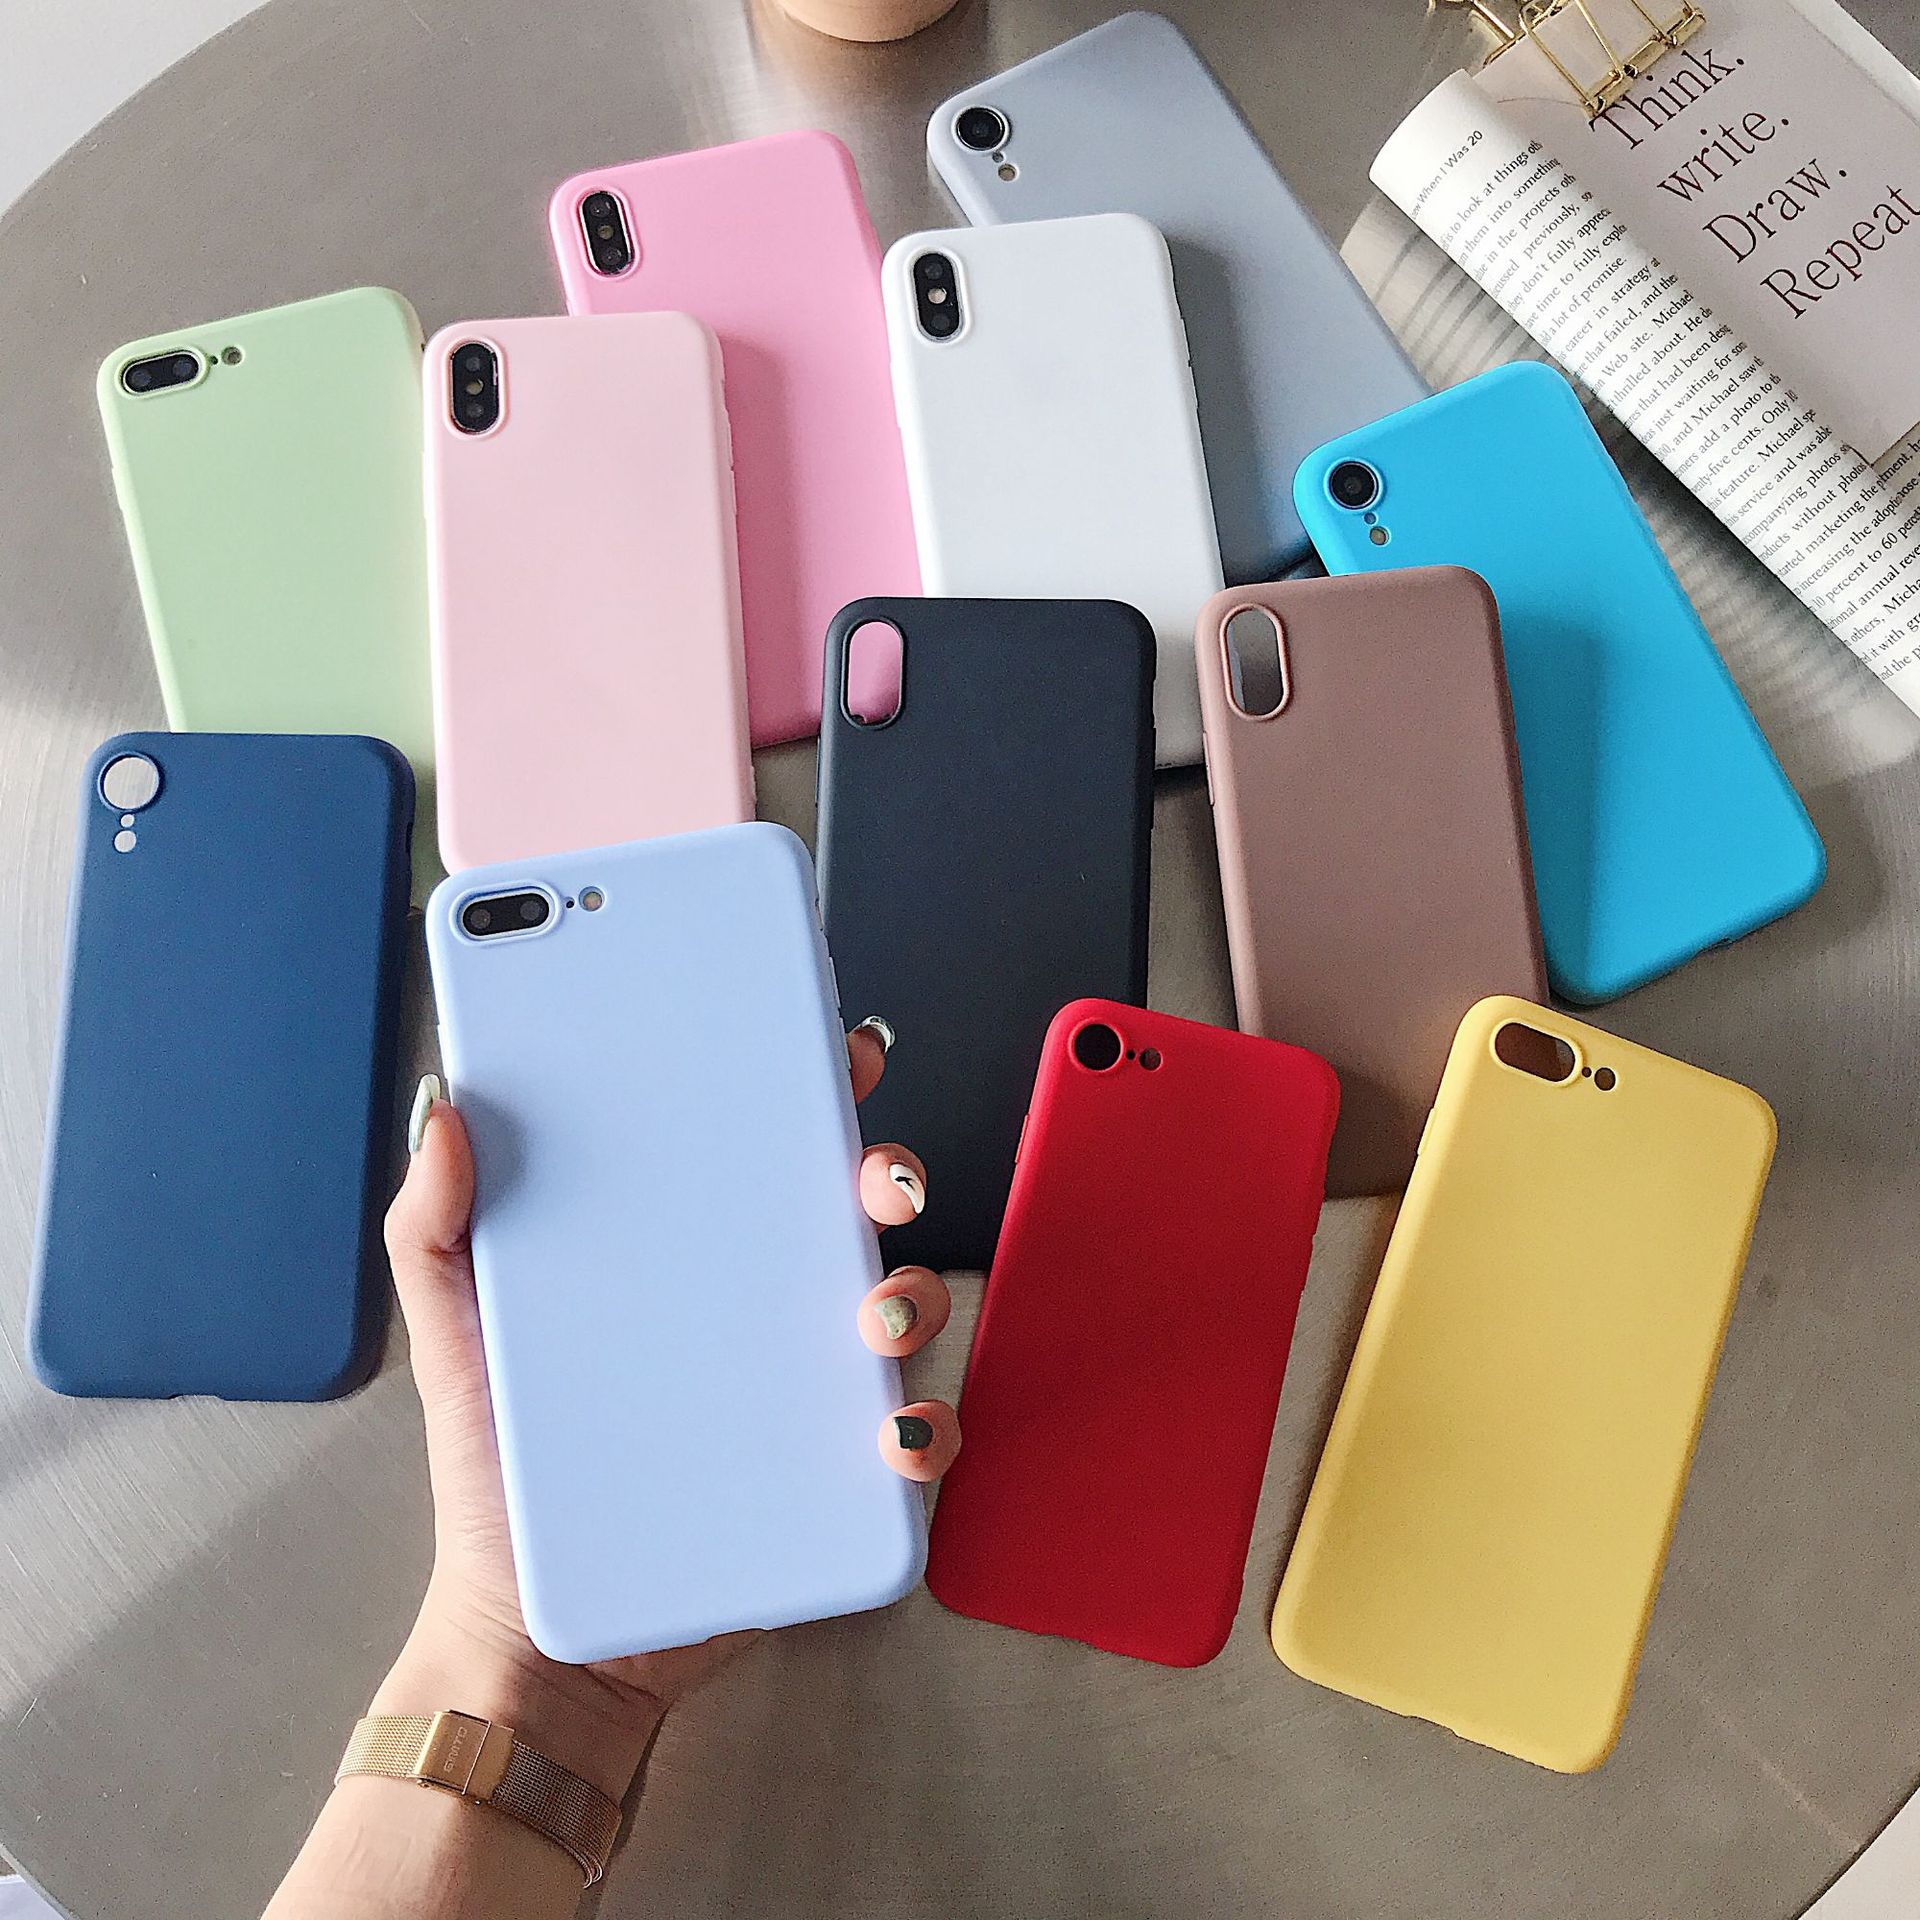 Candy Color TPU <font><b>Case</b></font> on <font><b>for</b></font> <font><b>Huawei</b></font> Y5 II Y5 Y7 <font><b>Y6</b></font> <font><b>Prime</b></font> Y9 <font><b>2018</b></font> P Smart GR5 2017 Mate 9 Lite Honor 7A pro V10 V20 5A 6C 7C <font><b>Cover</b></font> image